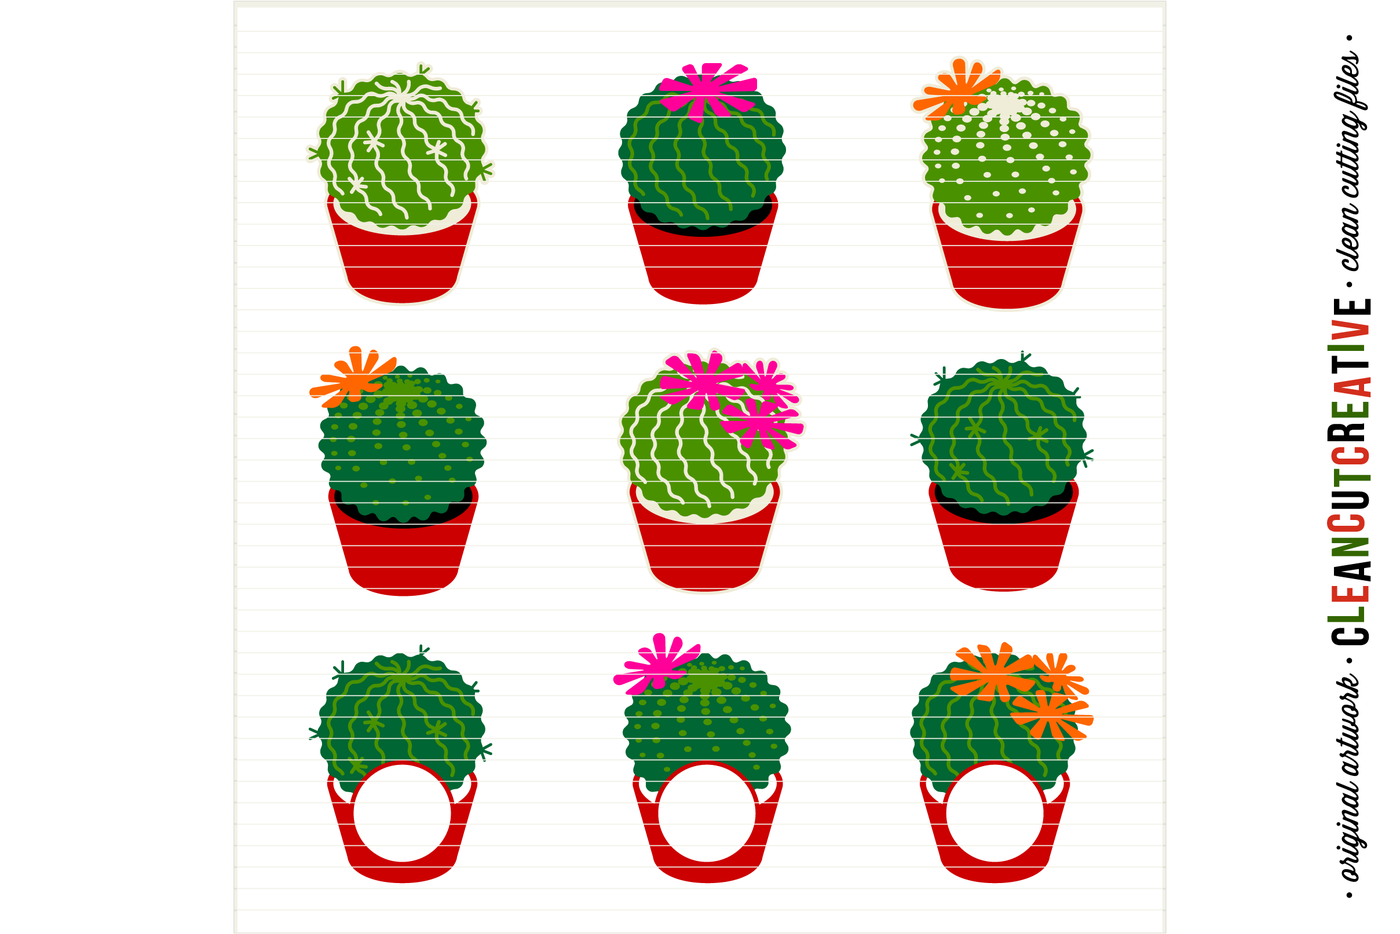 INTRODUCTION SALE Cactus Cutfiles Monogram Frame Summer Designs